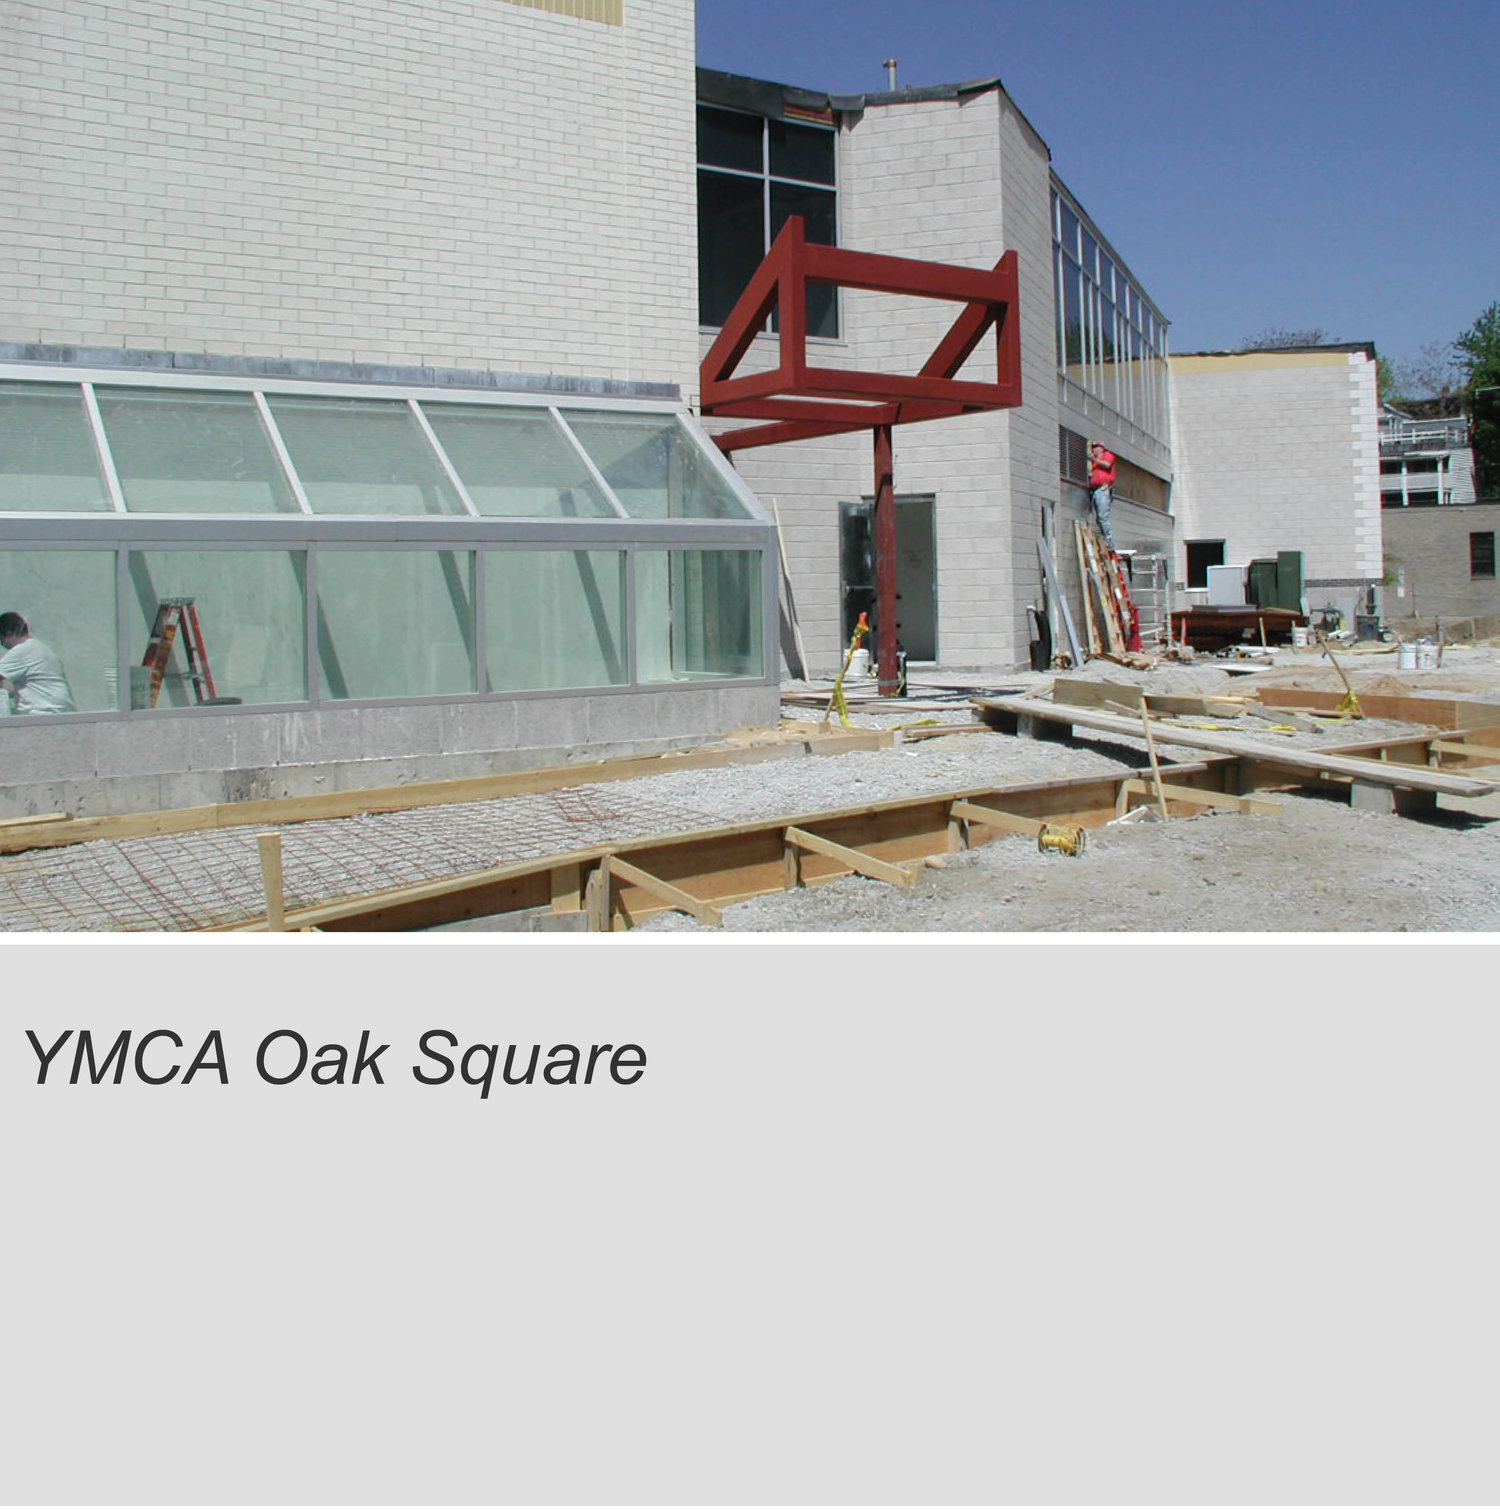 ymca oak square structural — linea 5, inc.